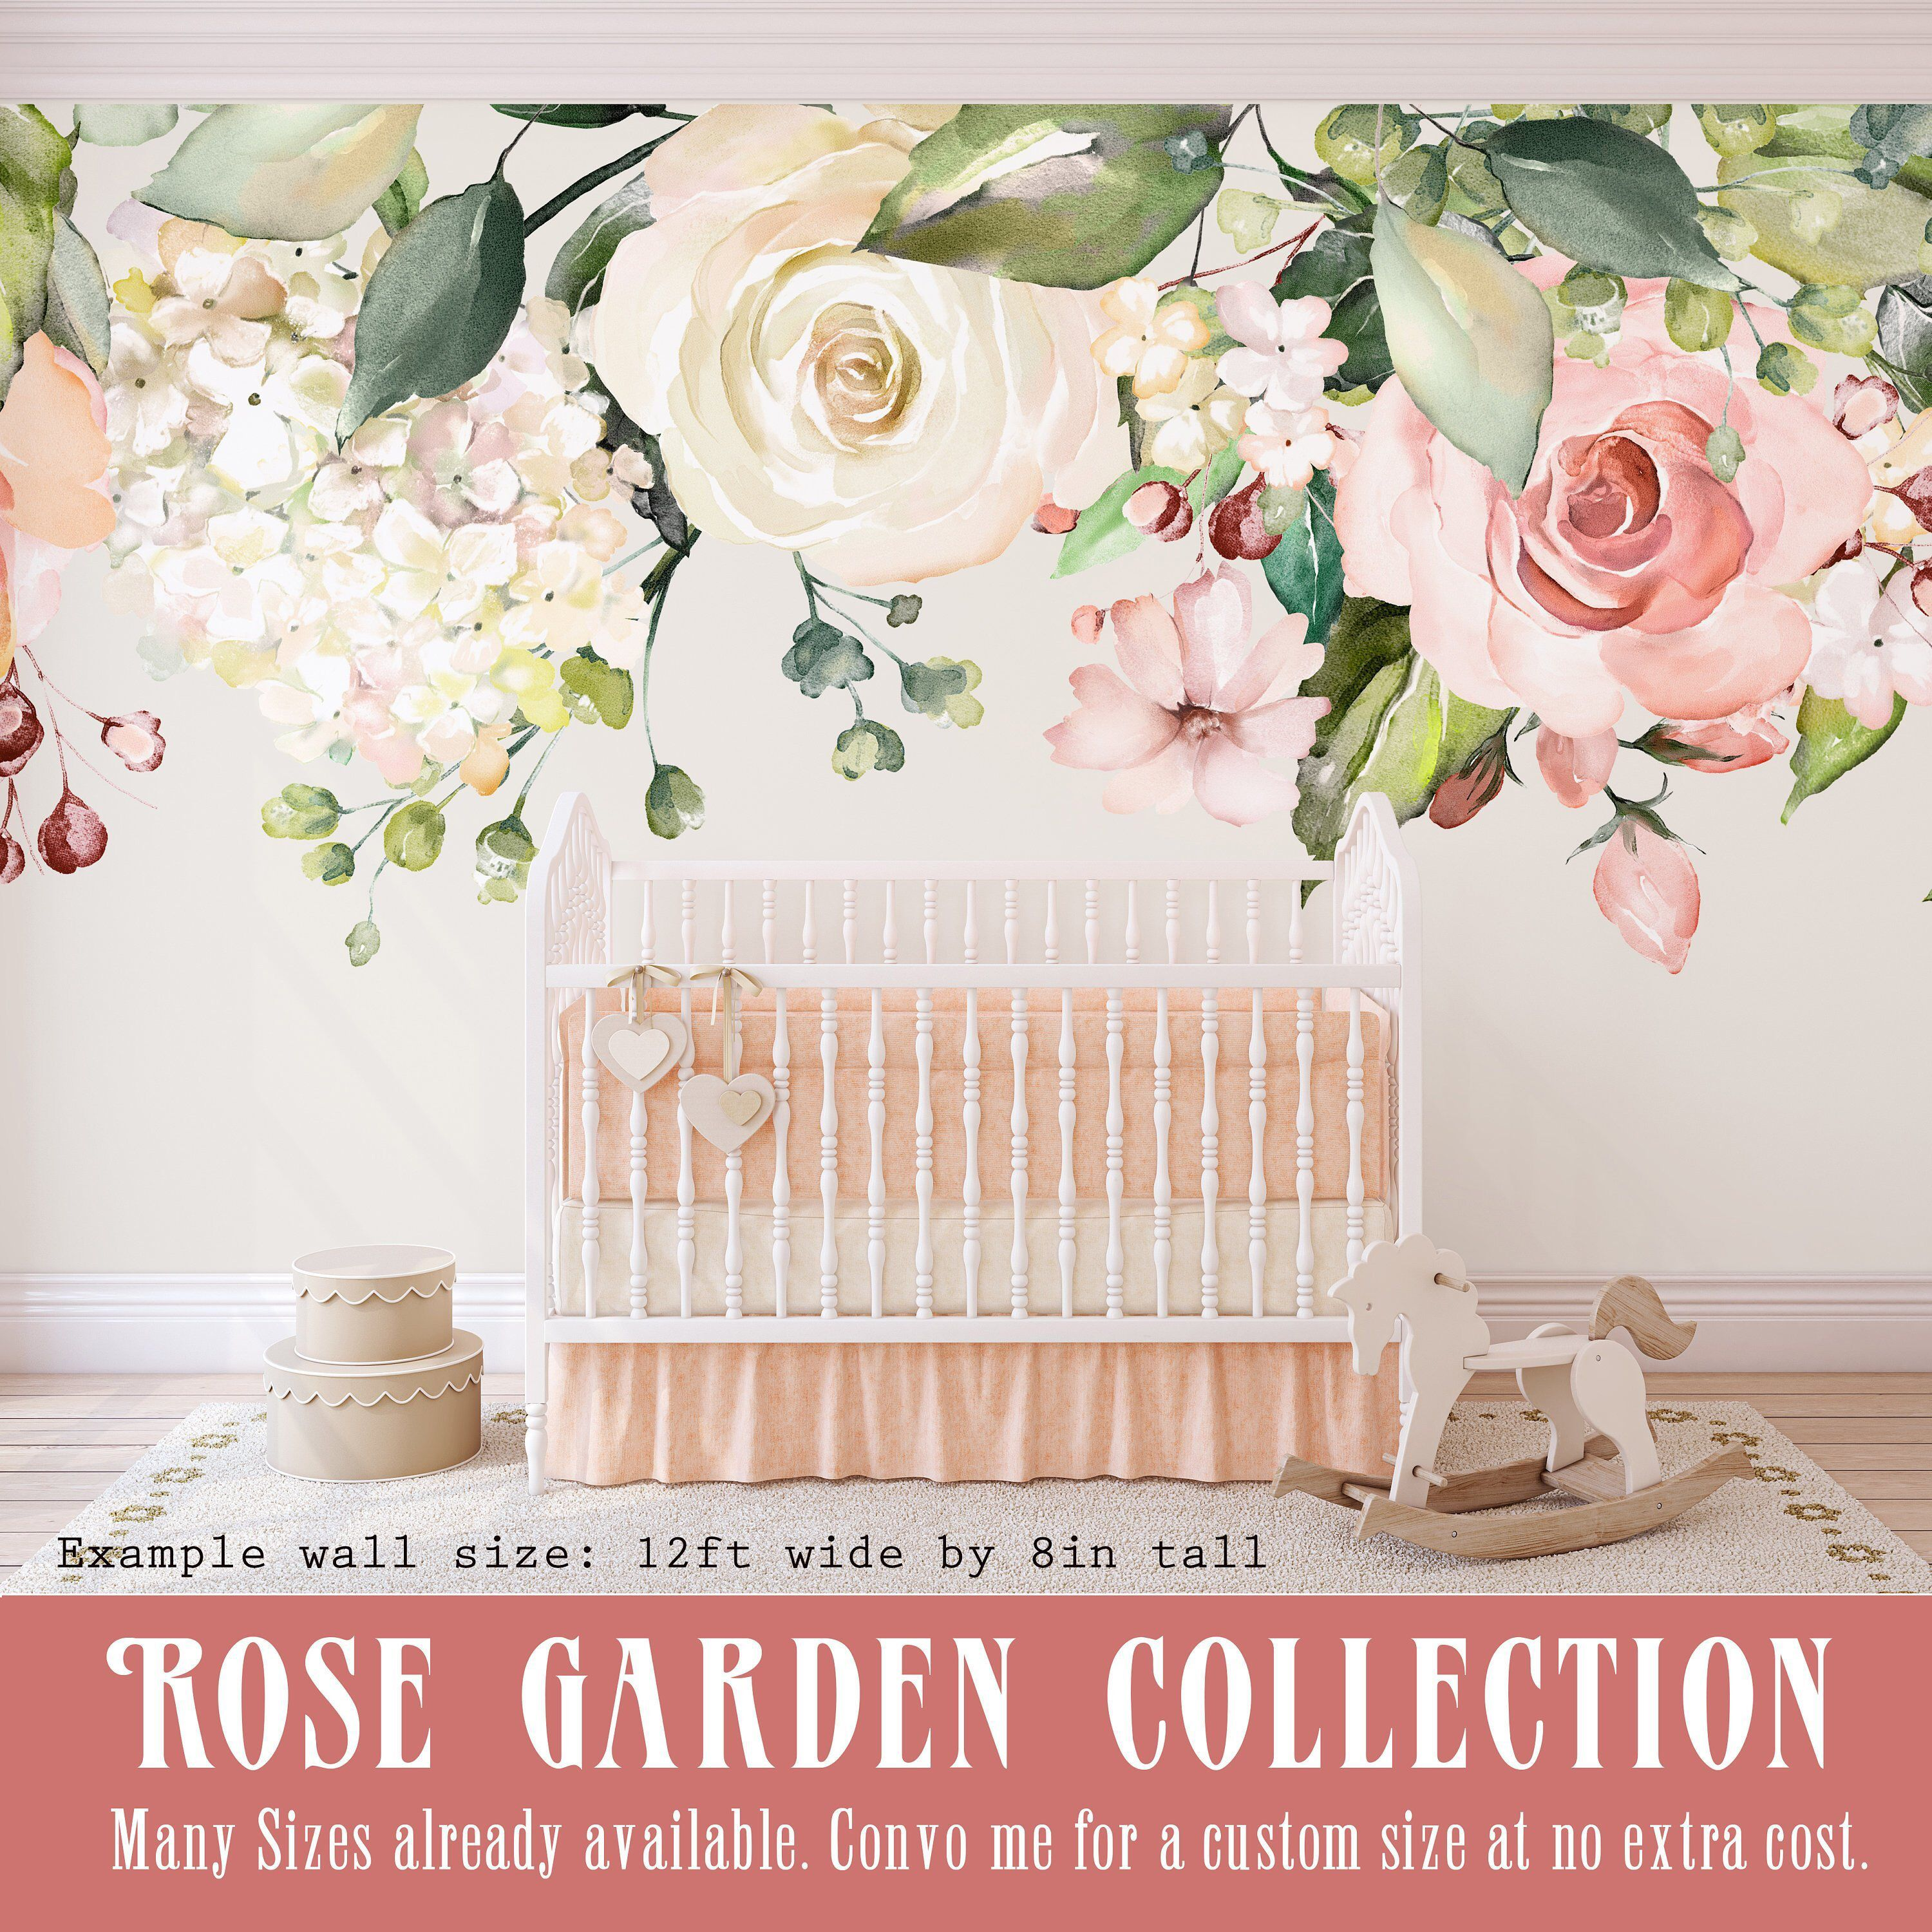 Rose Garden Floral Wall Decal Pink White Peonies Blooms Wall